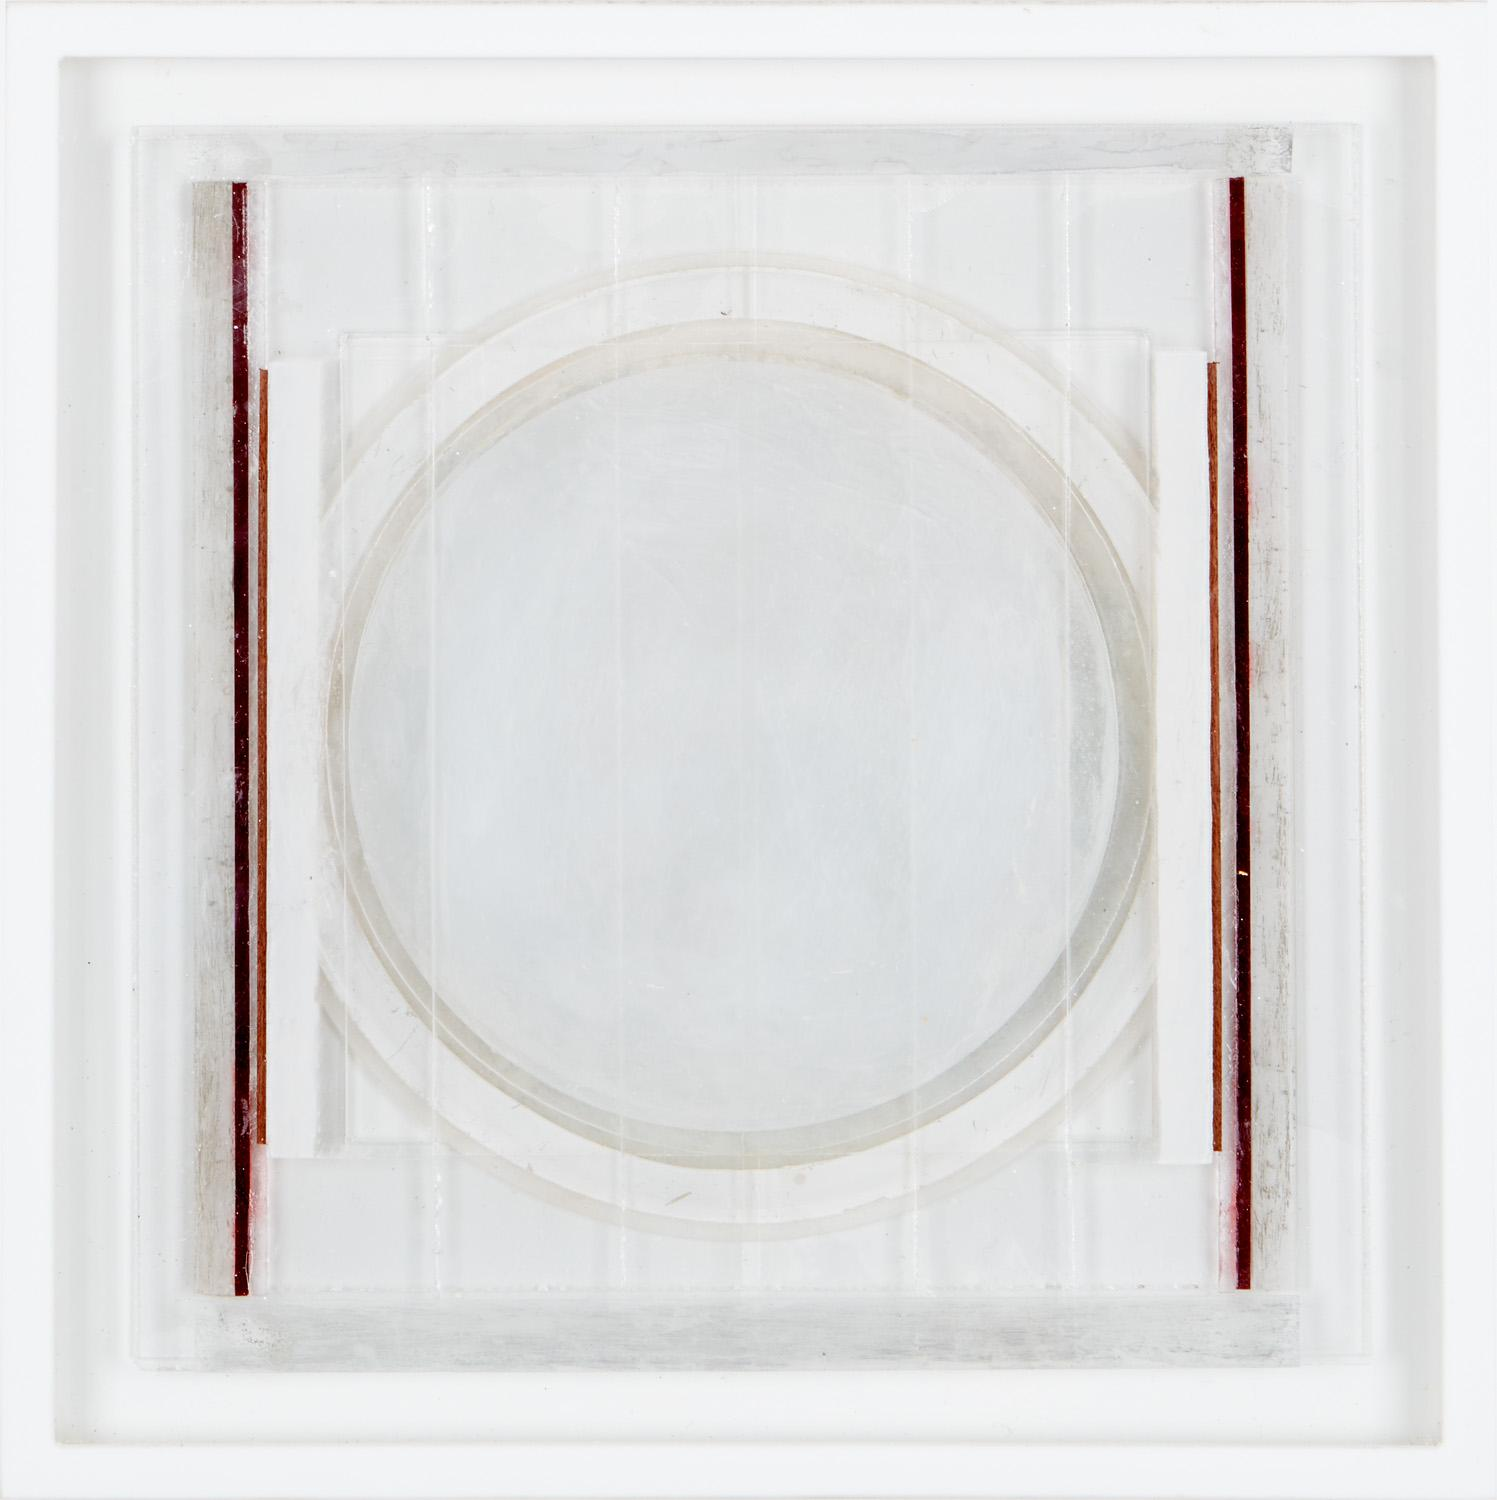 feiler-square-relief-li-2011-perspex-36-x-36-cm contemporary british art